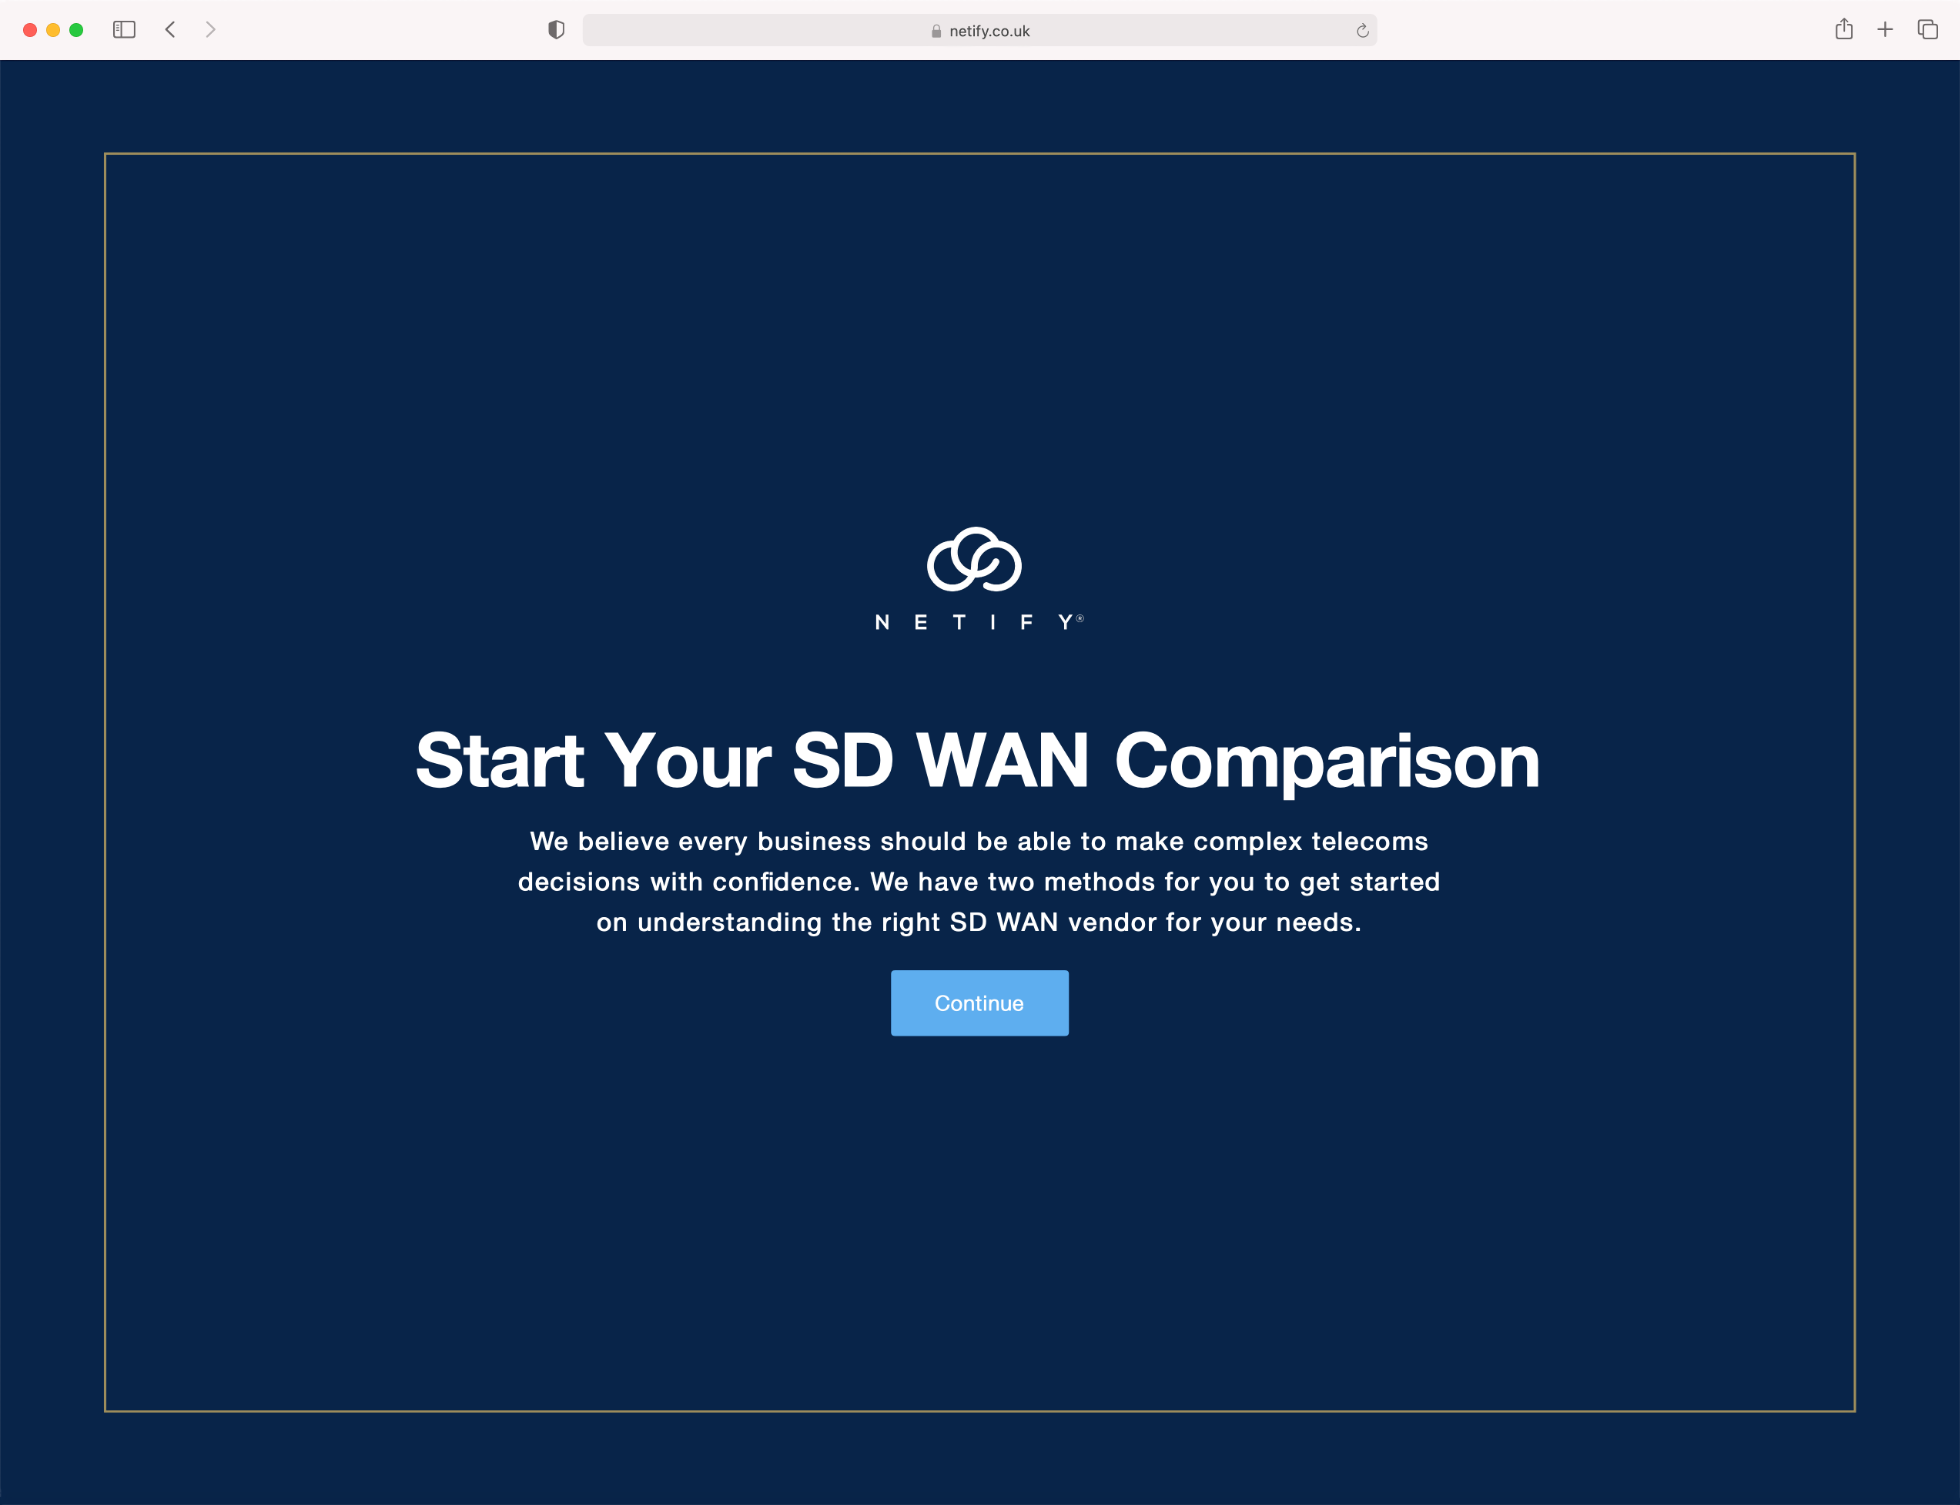 News Netify have launched the SD WAN assessment tool 2.0